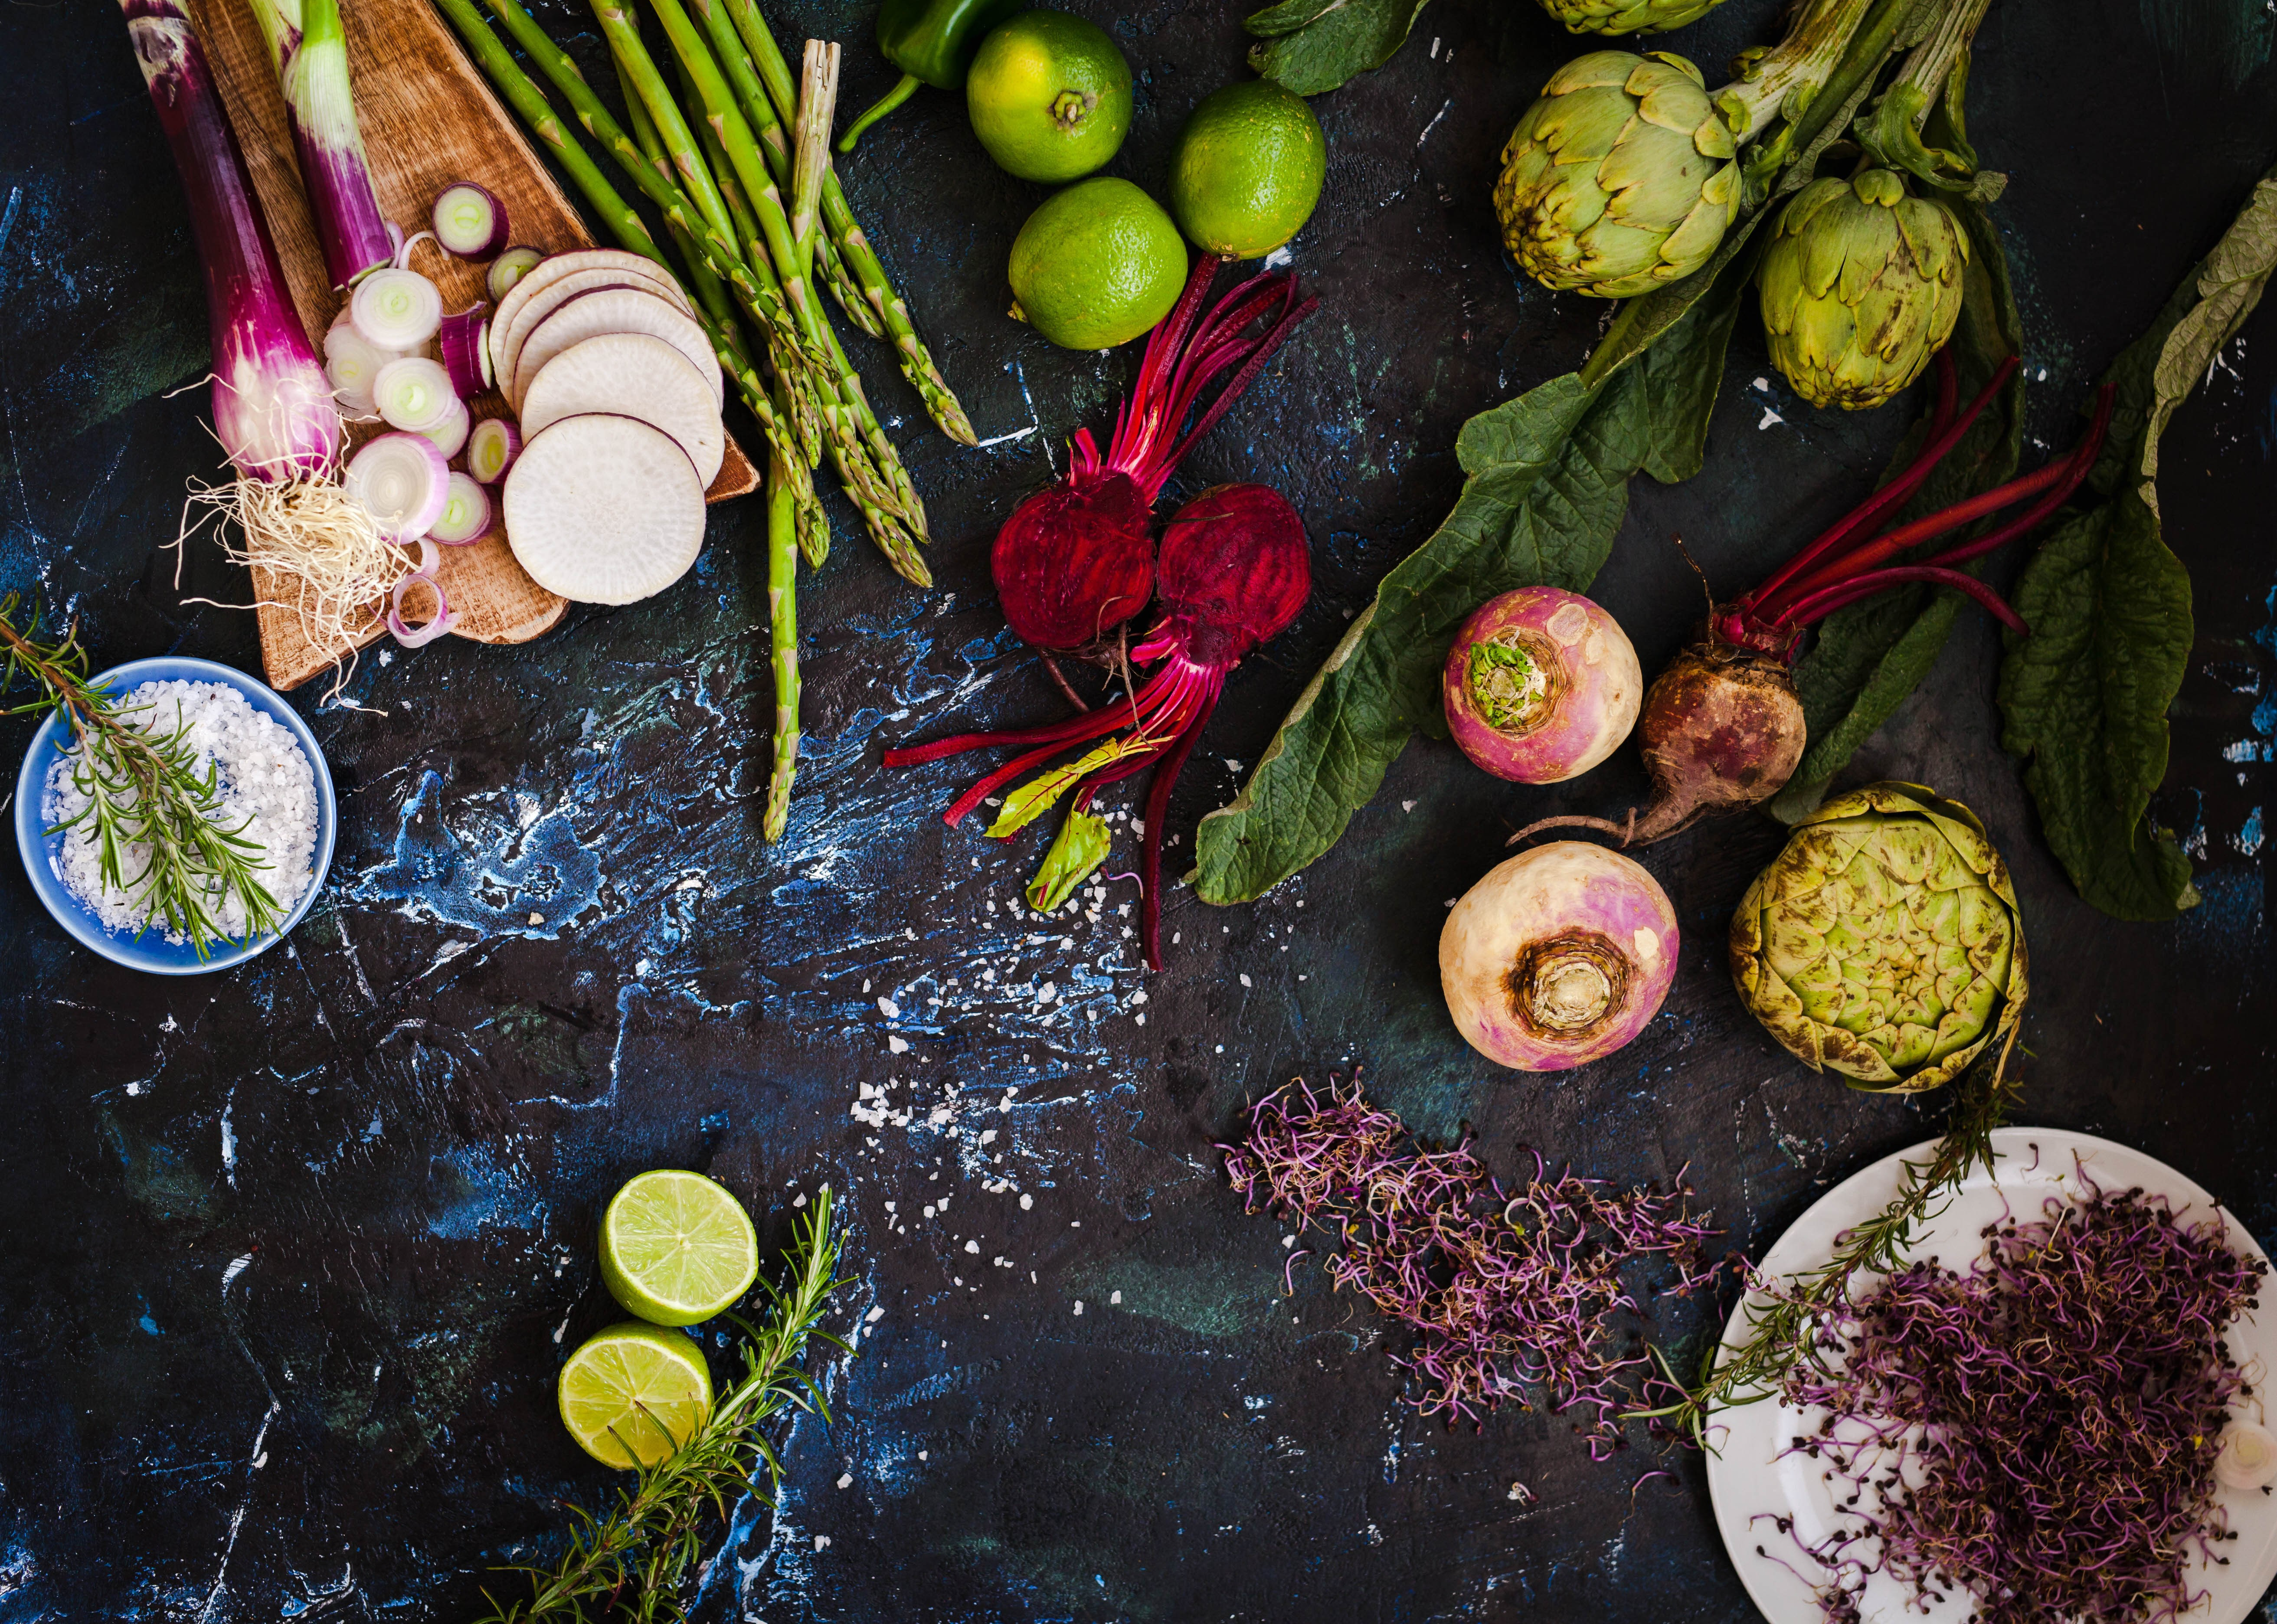 Fruits and vegetables on rustic background.jpg